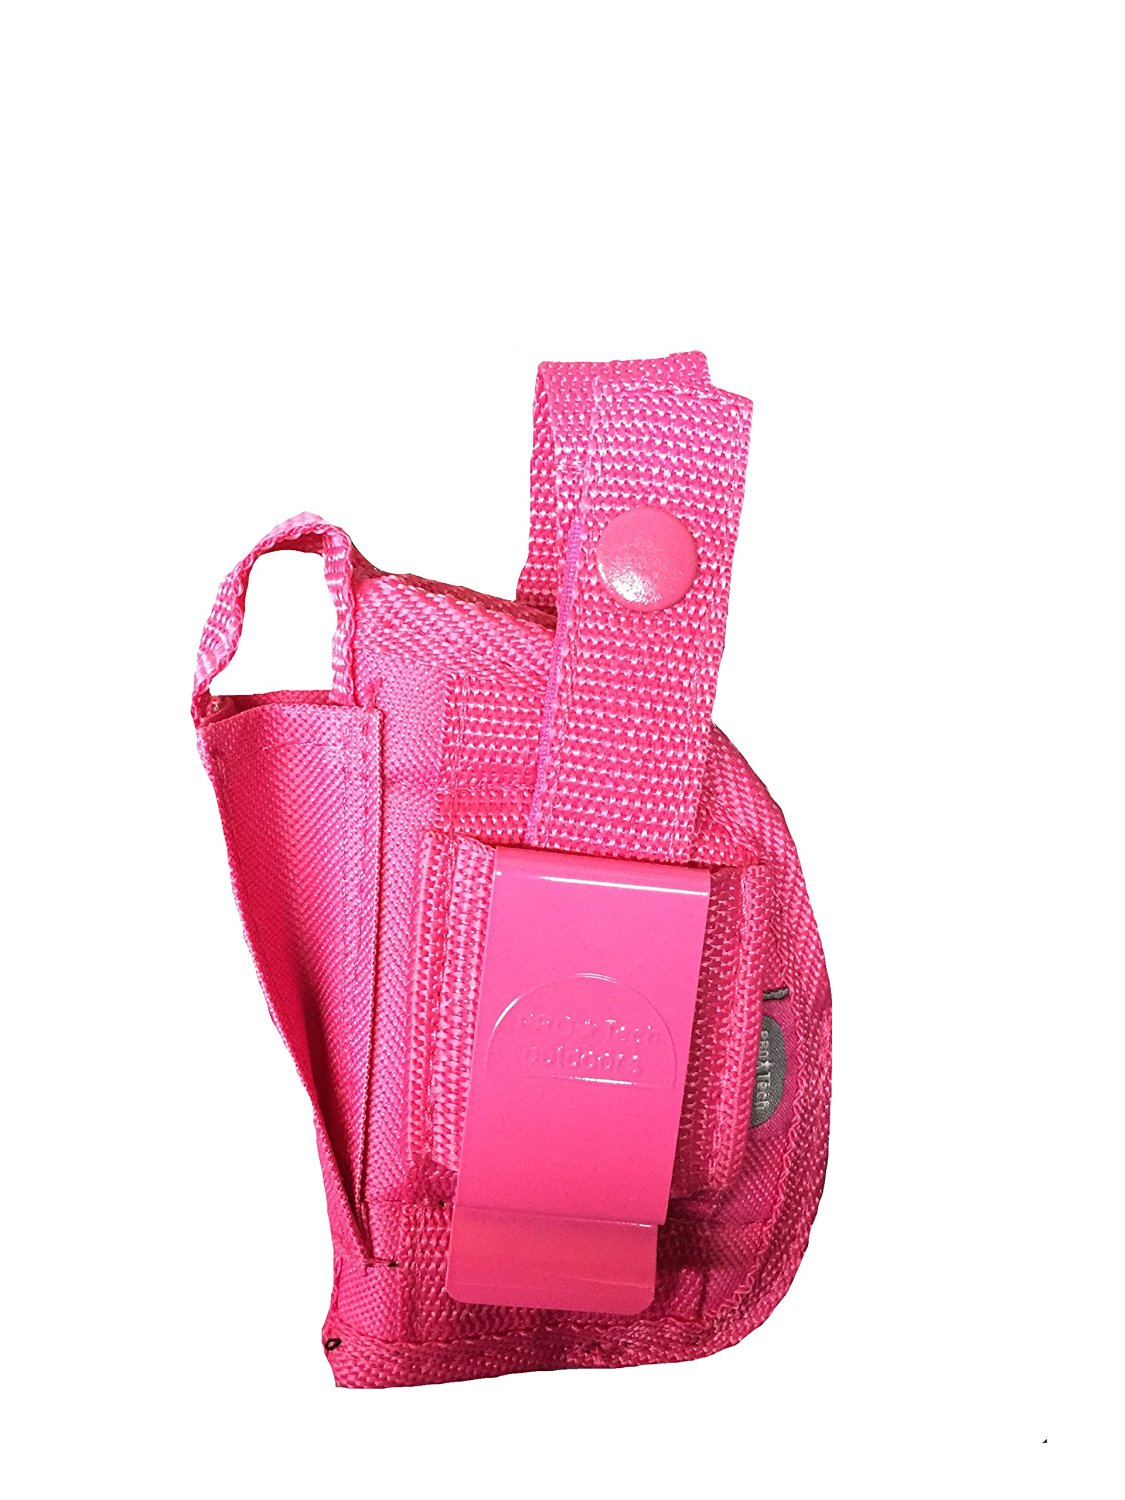 Cheap Pink Lcp, find Pink Lcp deals on line at Alibaba com